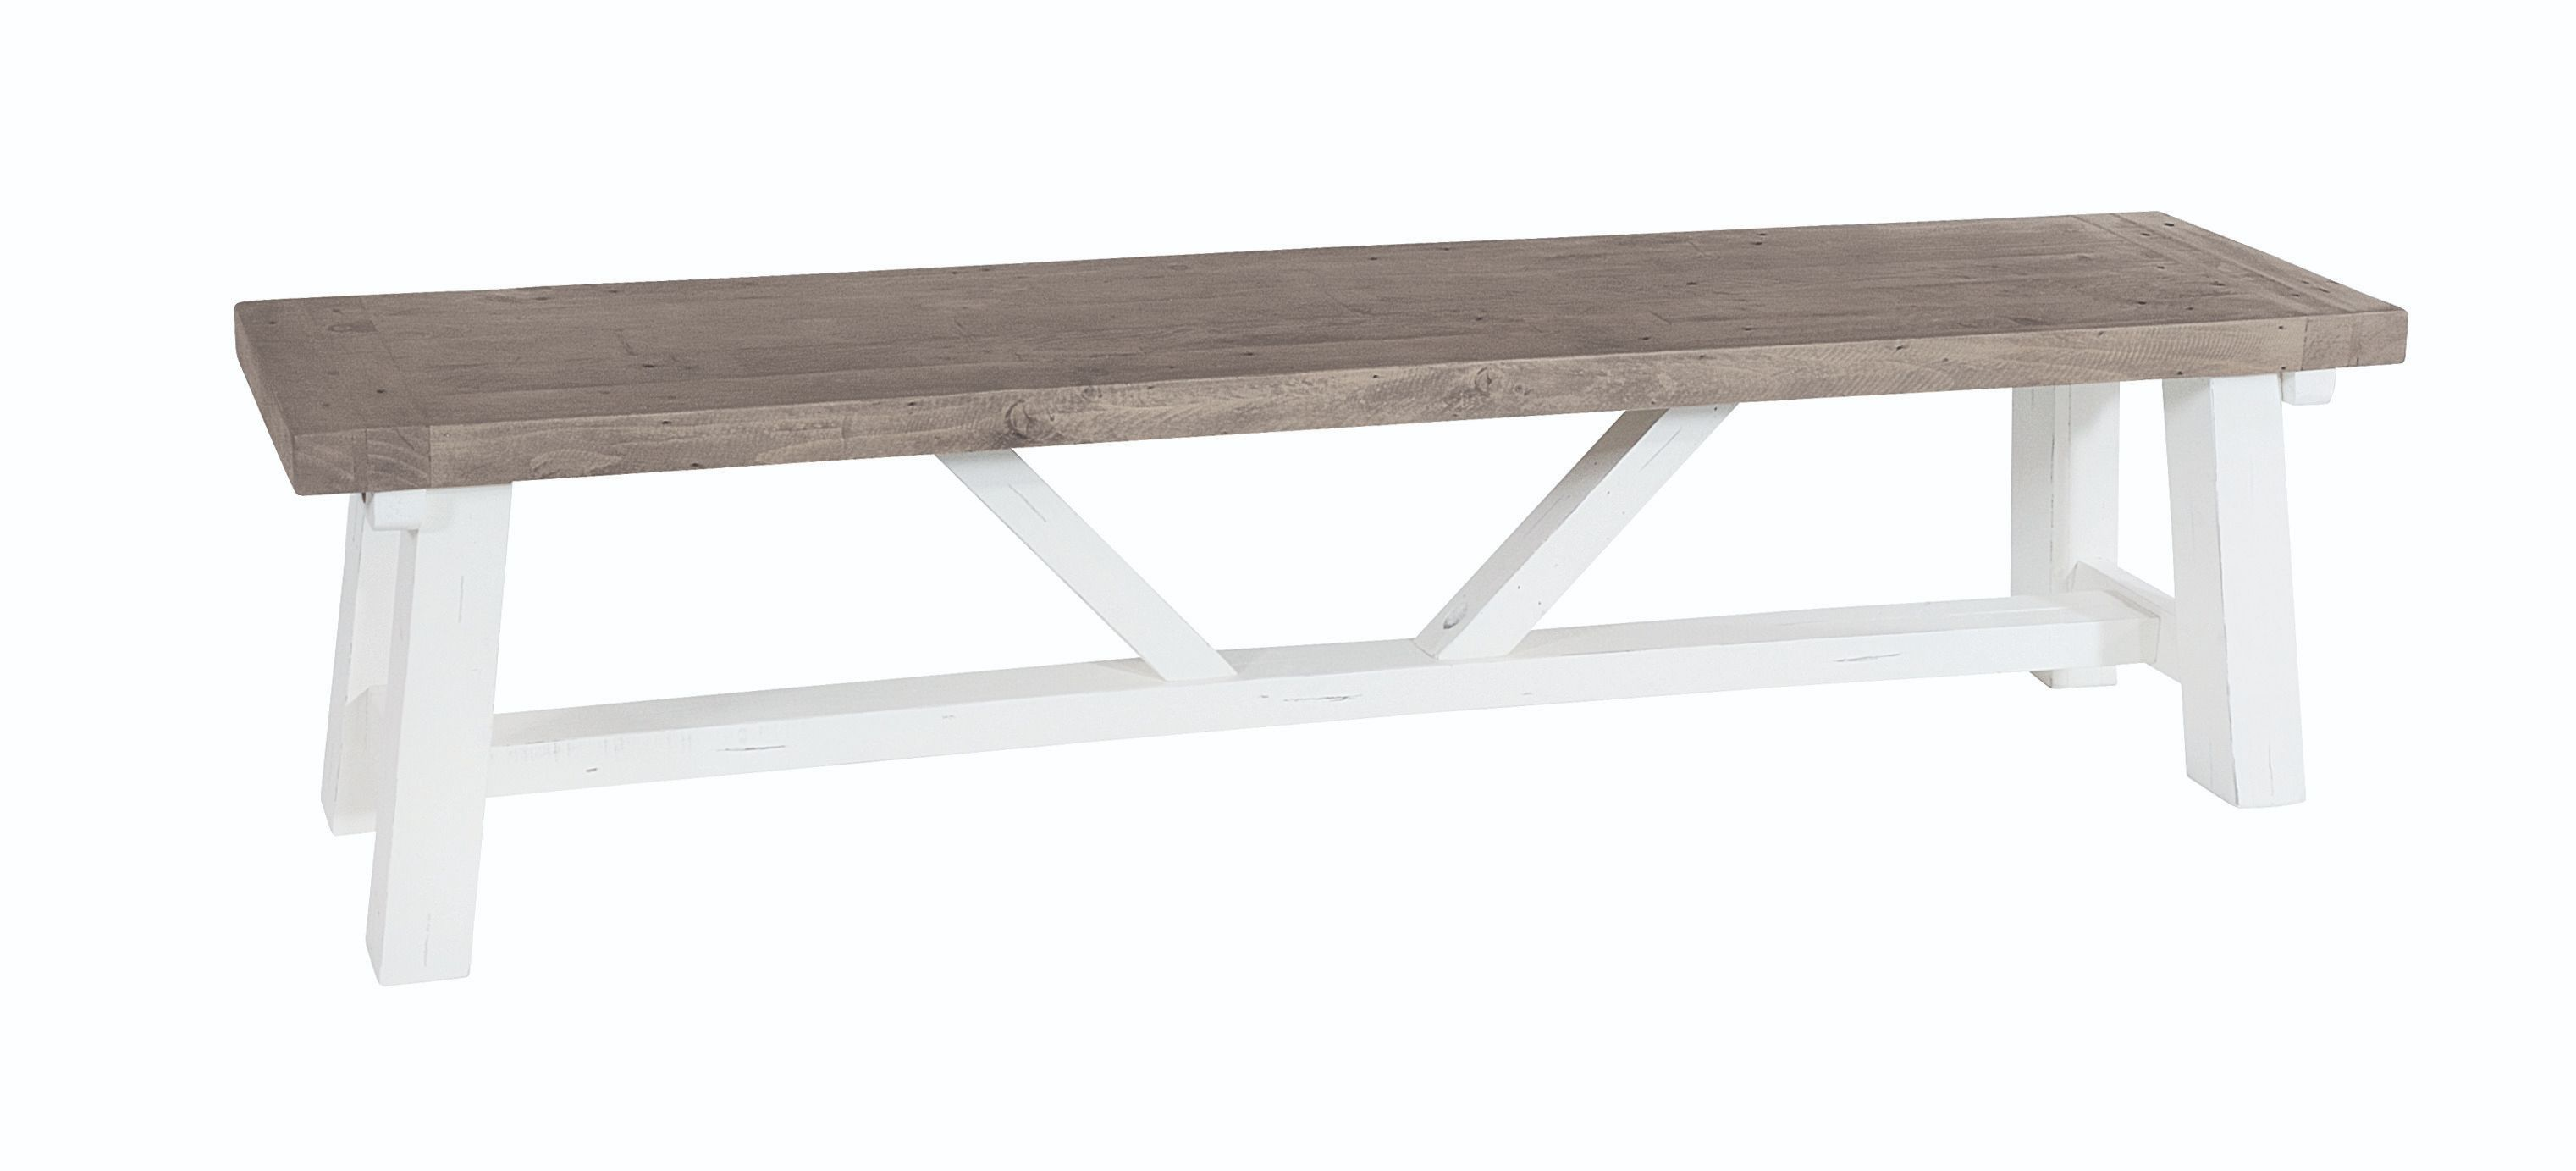 PURBECK 140 BENCH Distressed Paint & Driftwood